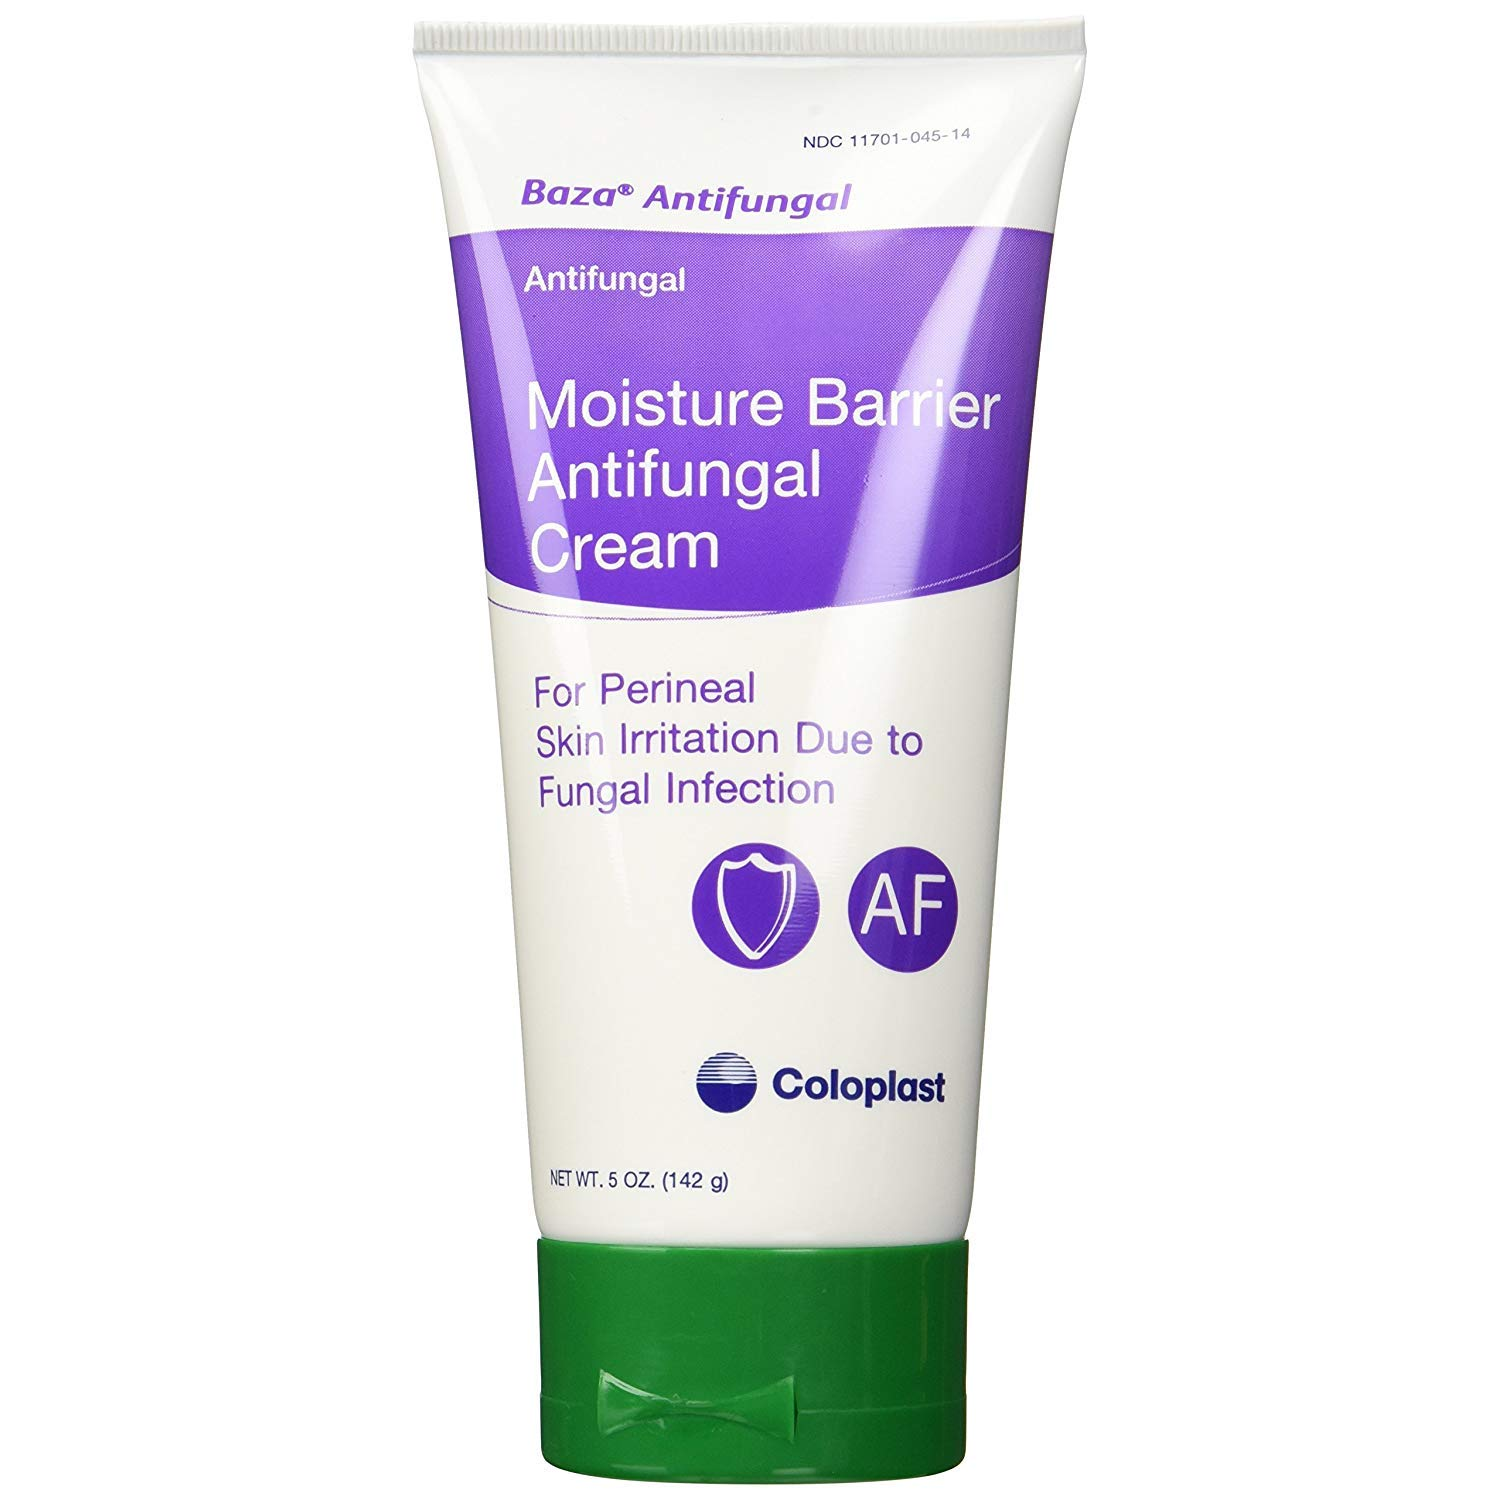 Coloplast Baza Moisture Barrier Antifungal Cream - 5 oz, Pack of 5 by Coloplast